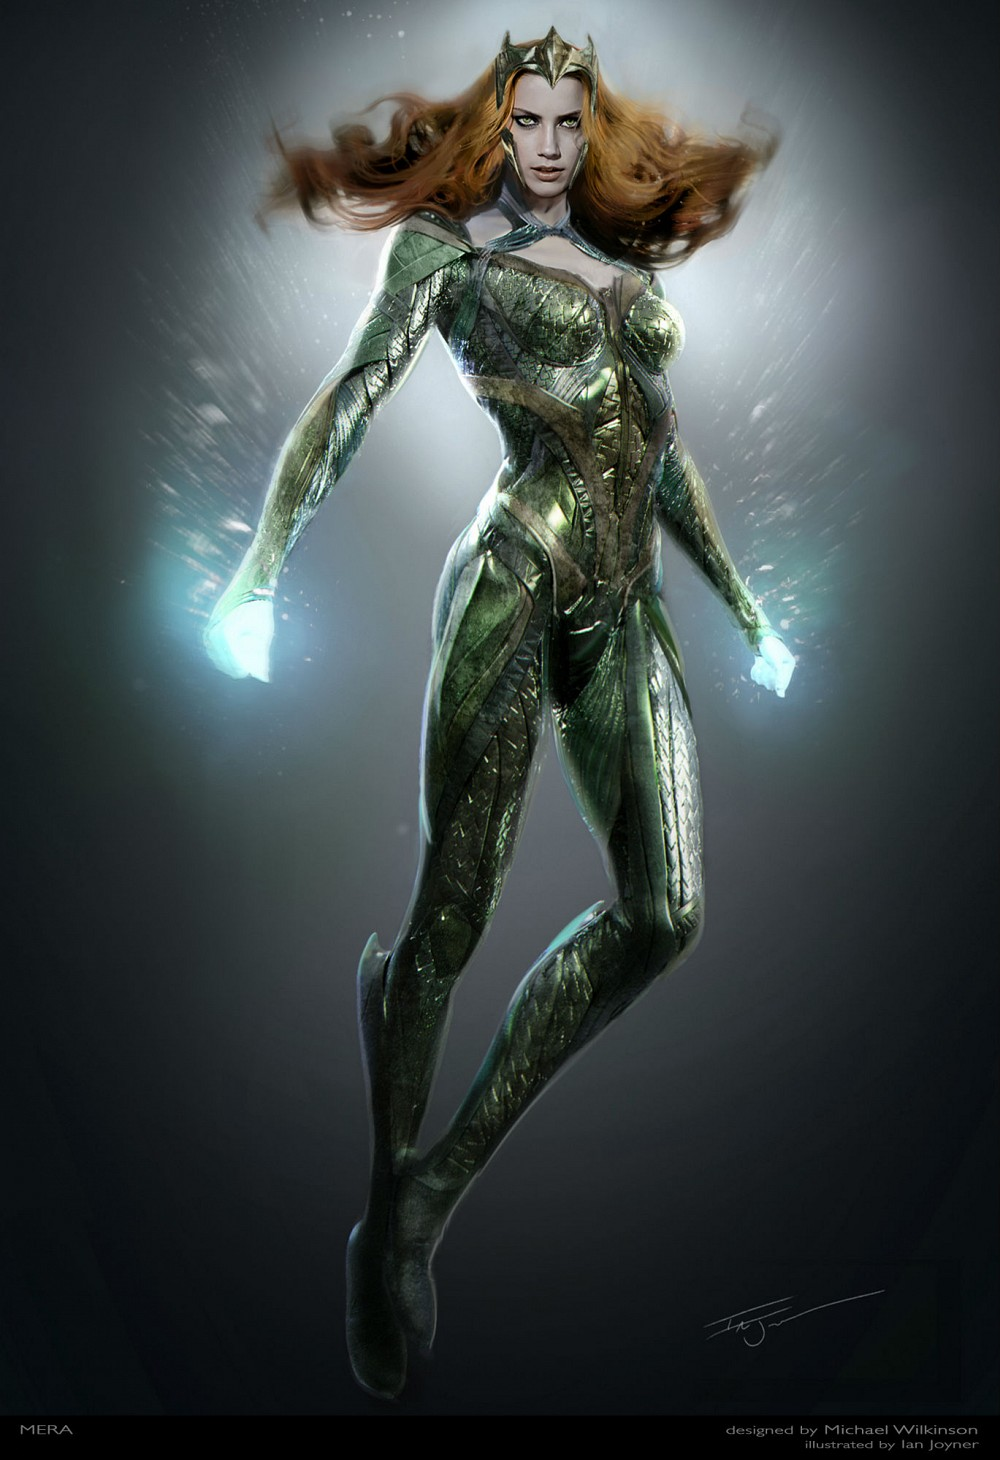 justice-league-mera-concept-art